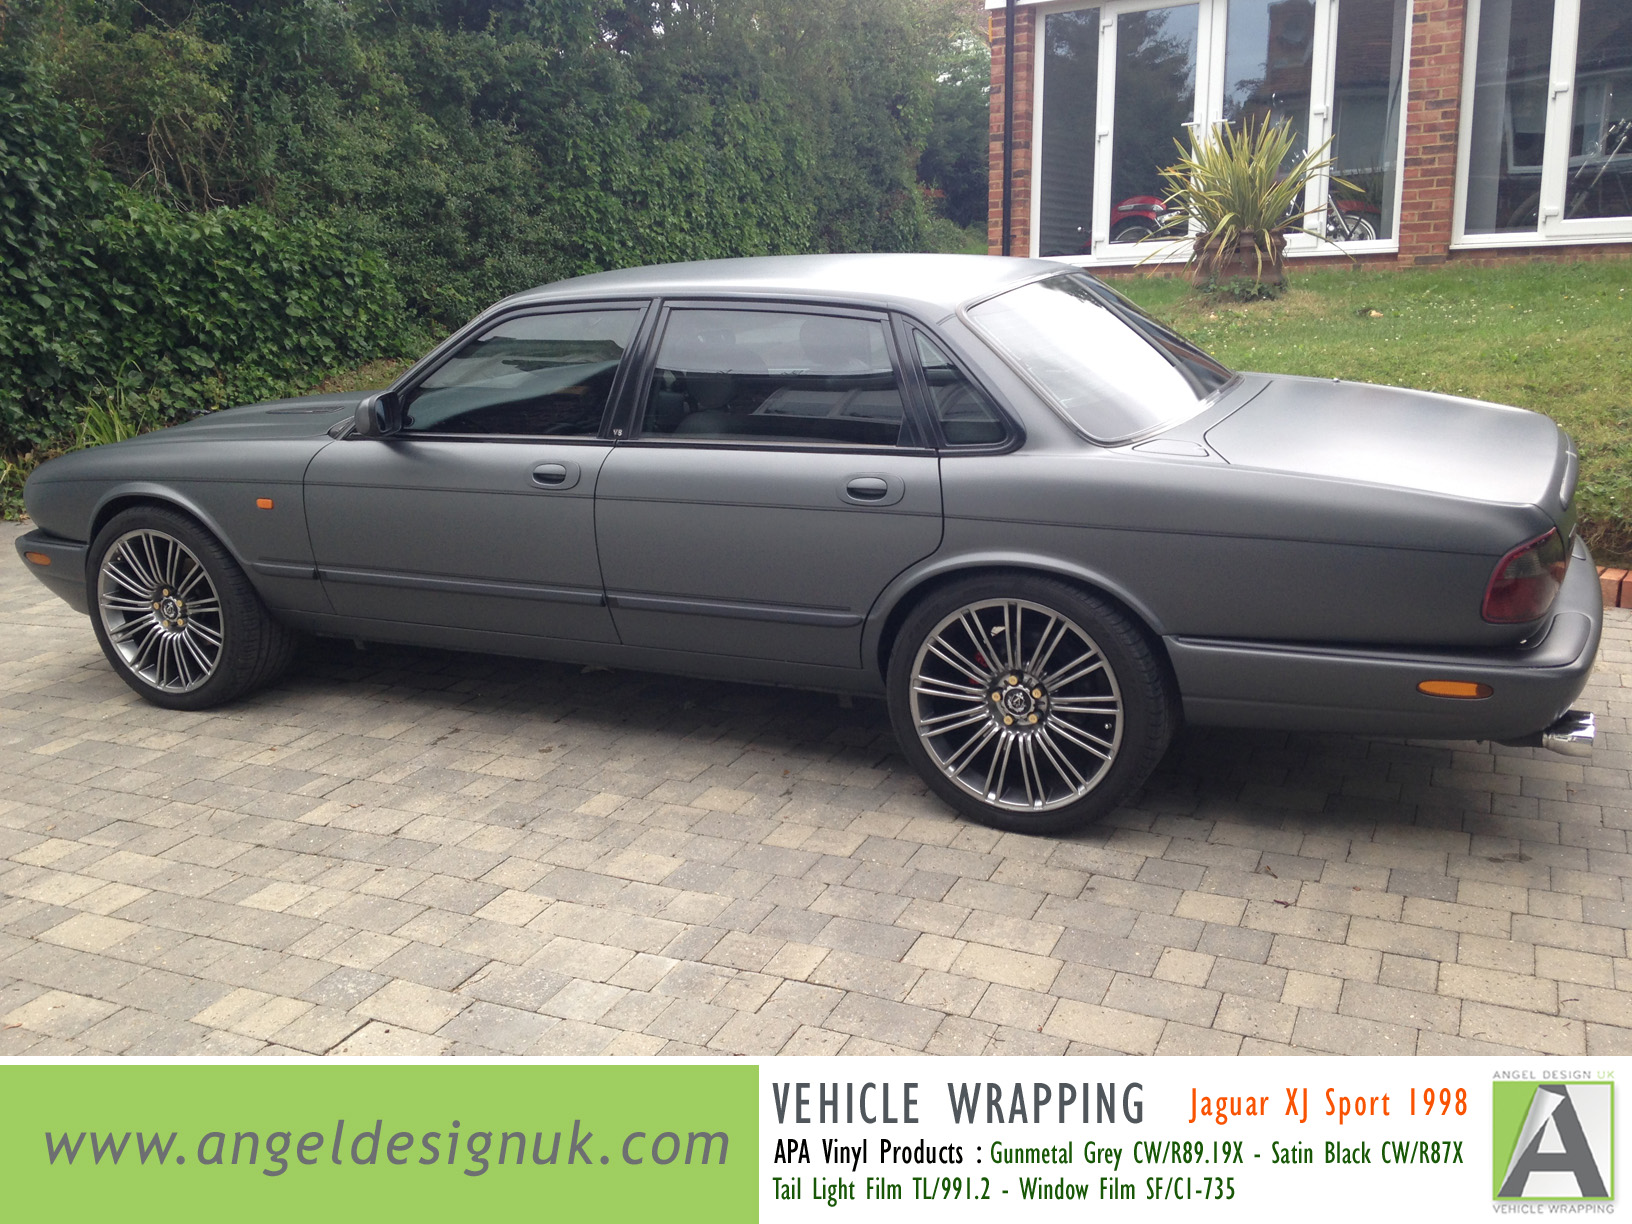 ANGEL DESIGN UK Vehicle Wrapping Jaguar XJ Sport 1998 Gunmetal Grey Pic 2